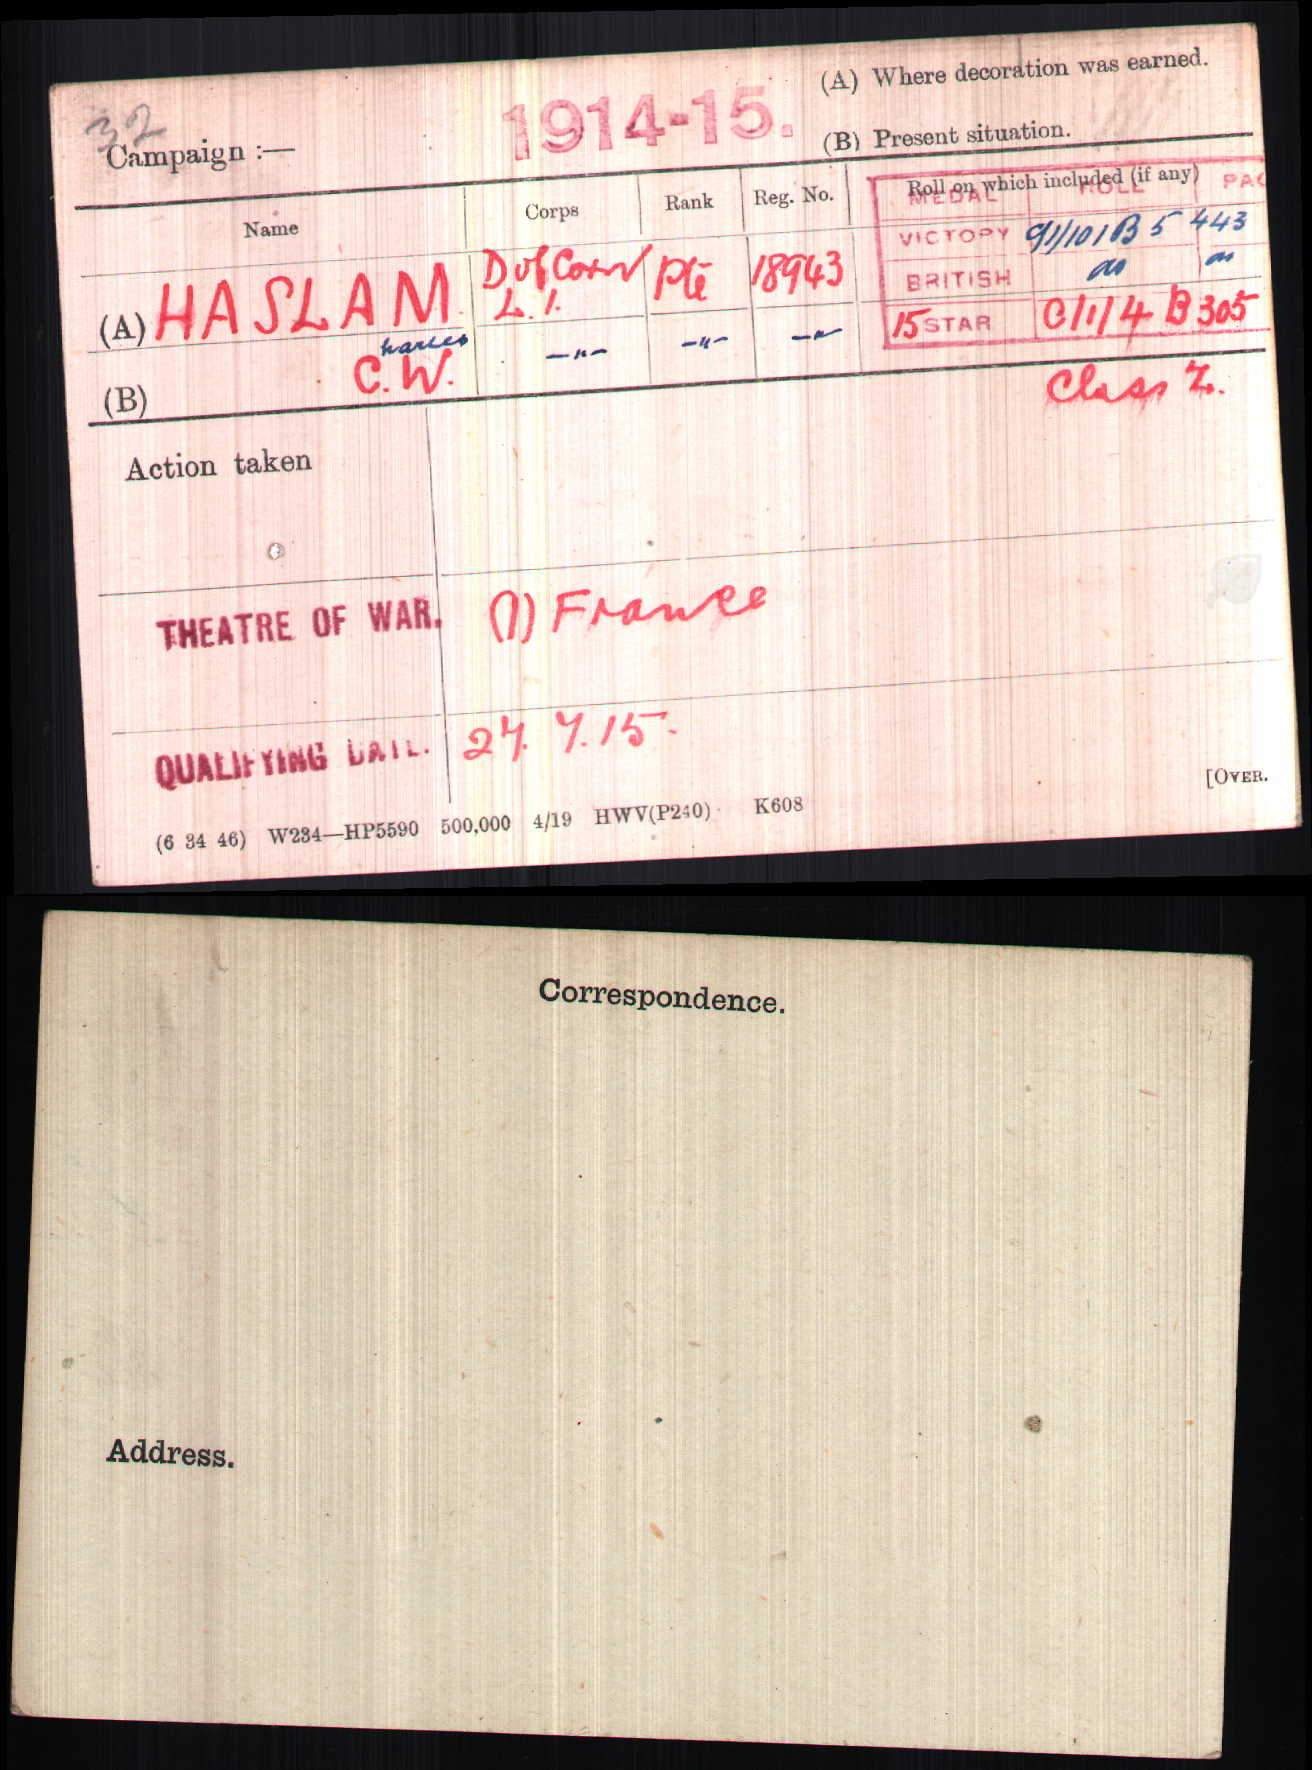 Handwritten copy of Charles W. Haslam's medal record card.